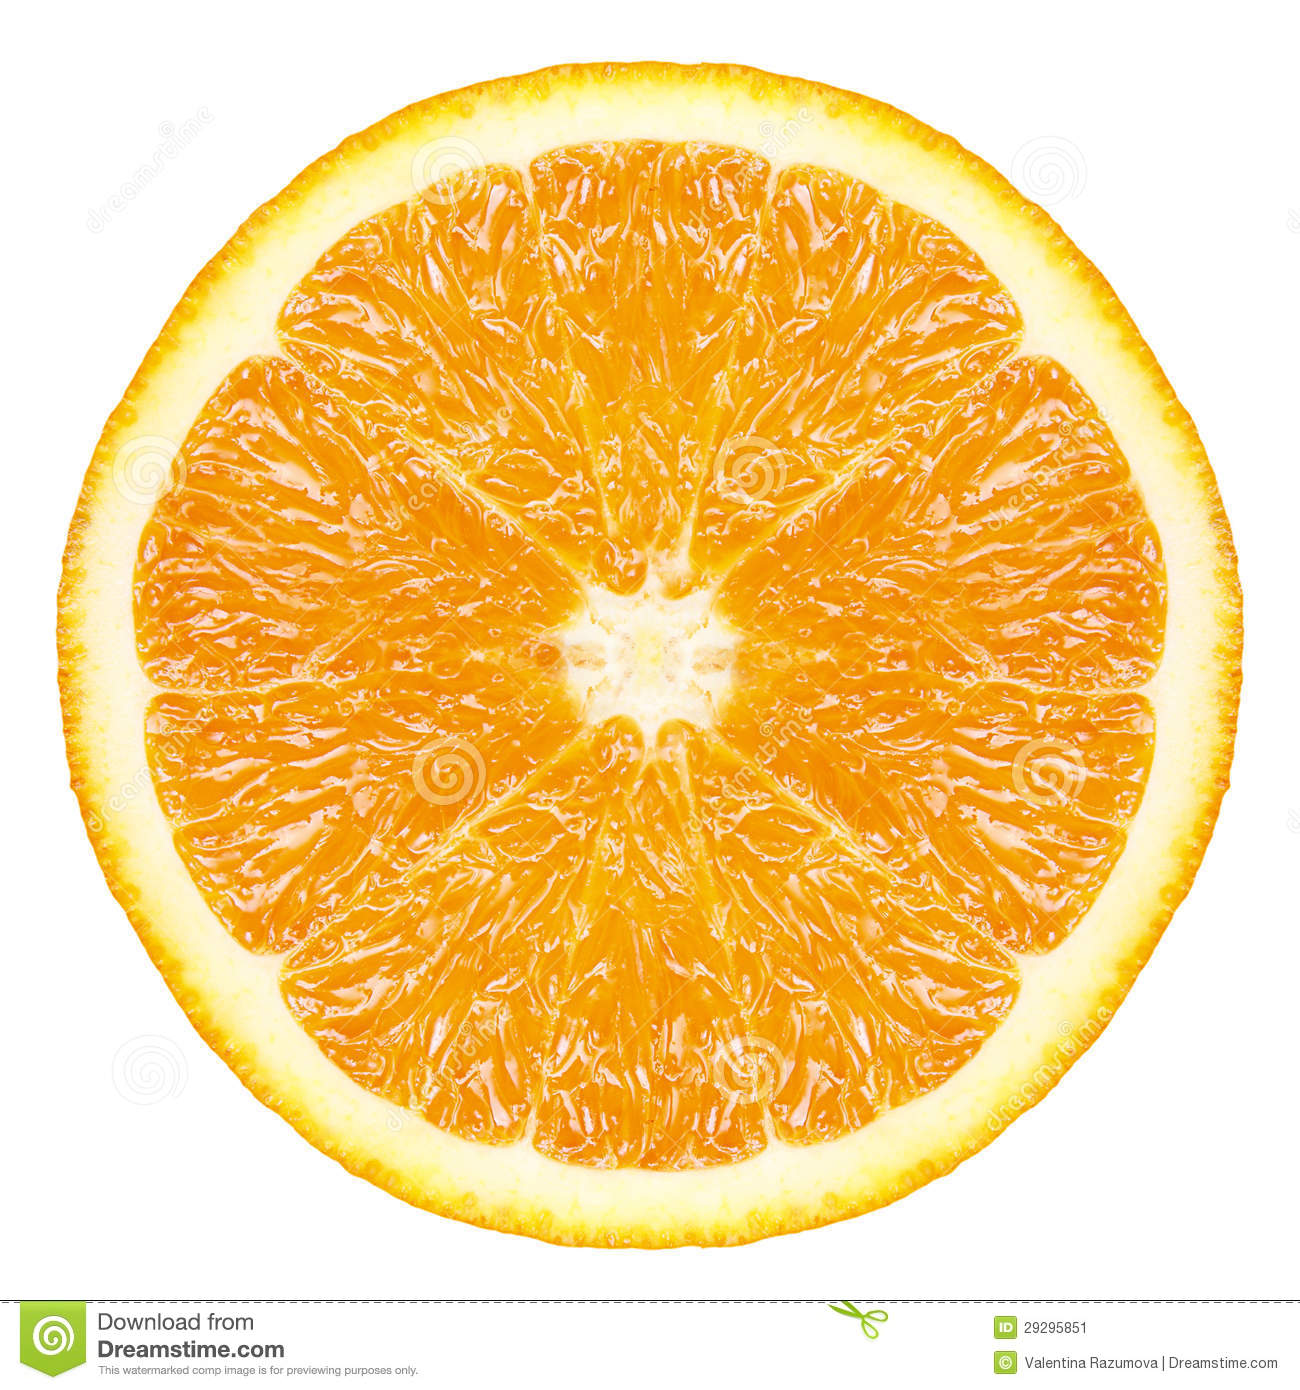 More similar stock images of ` Orange fruit slice `